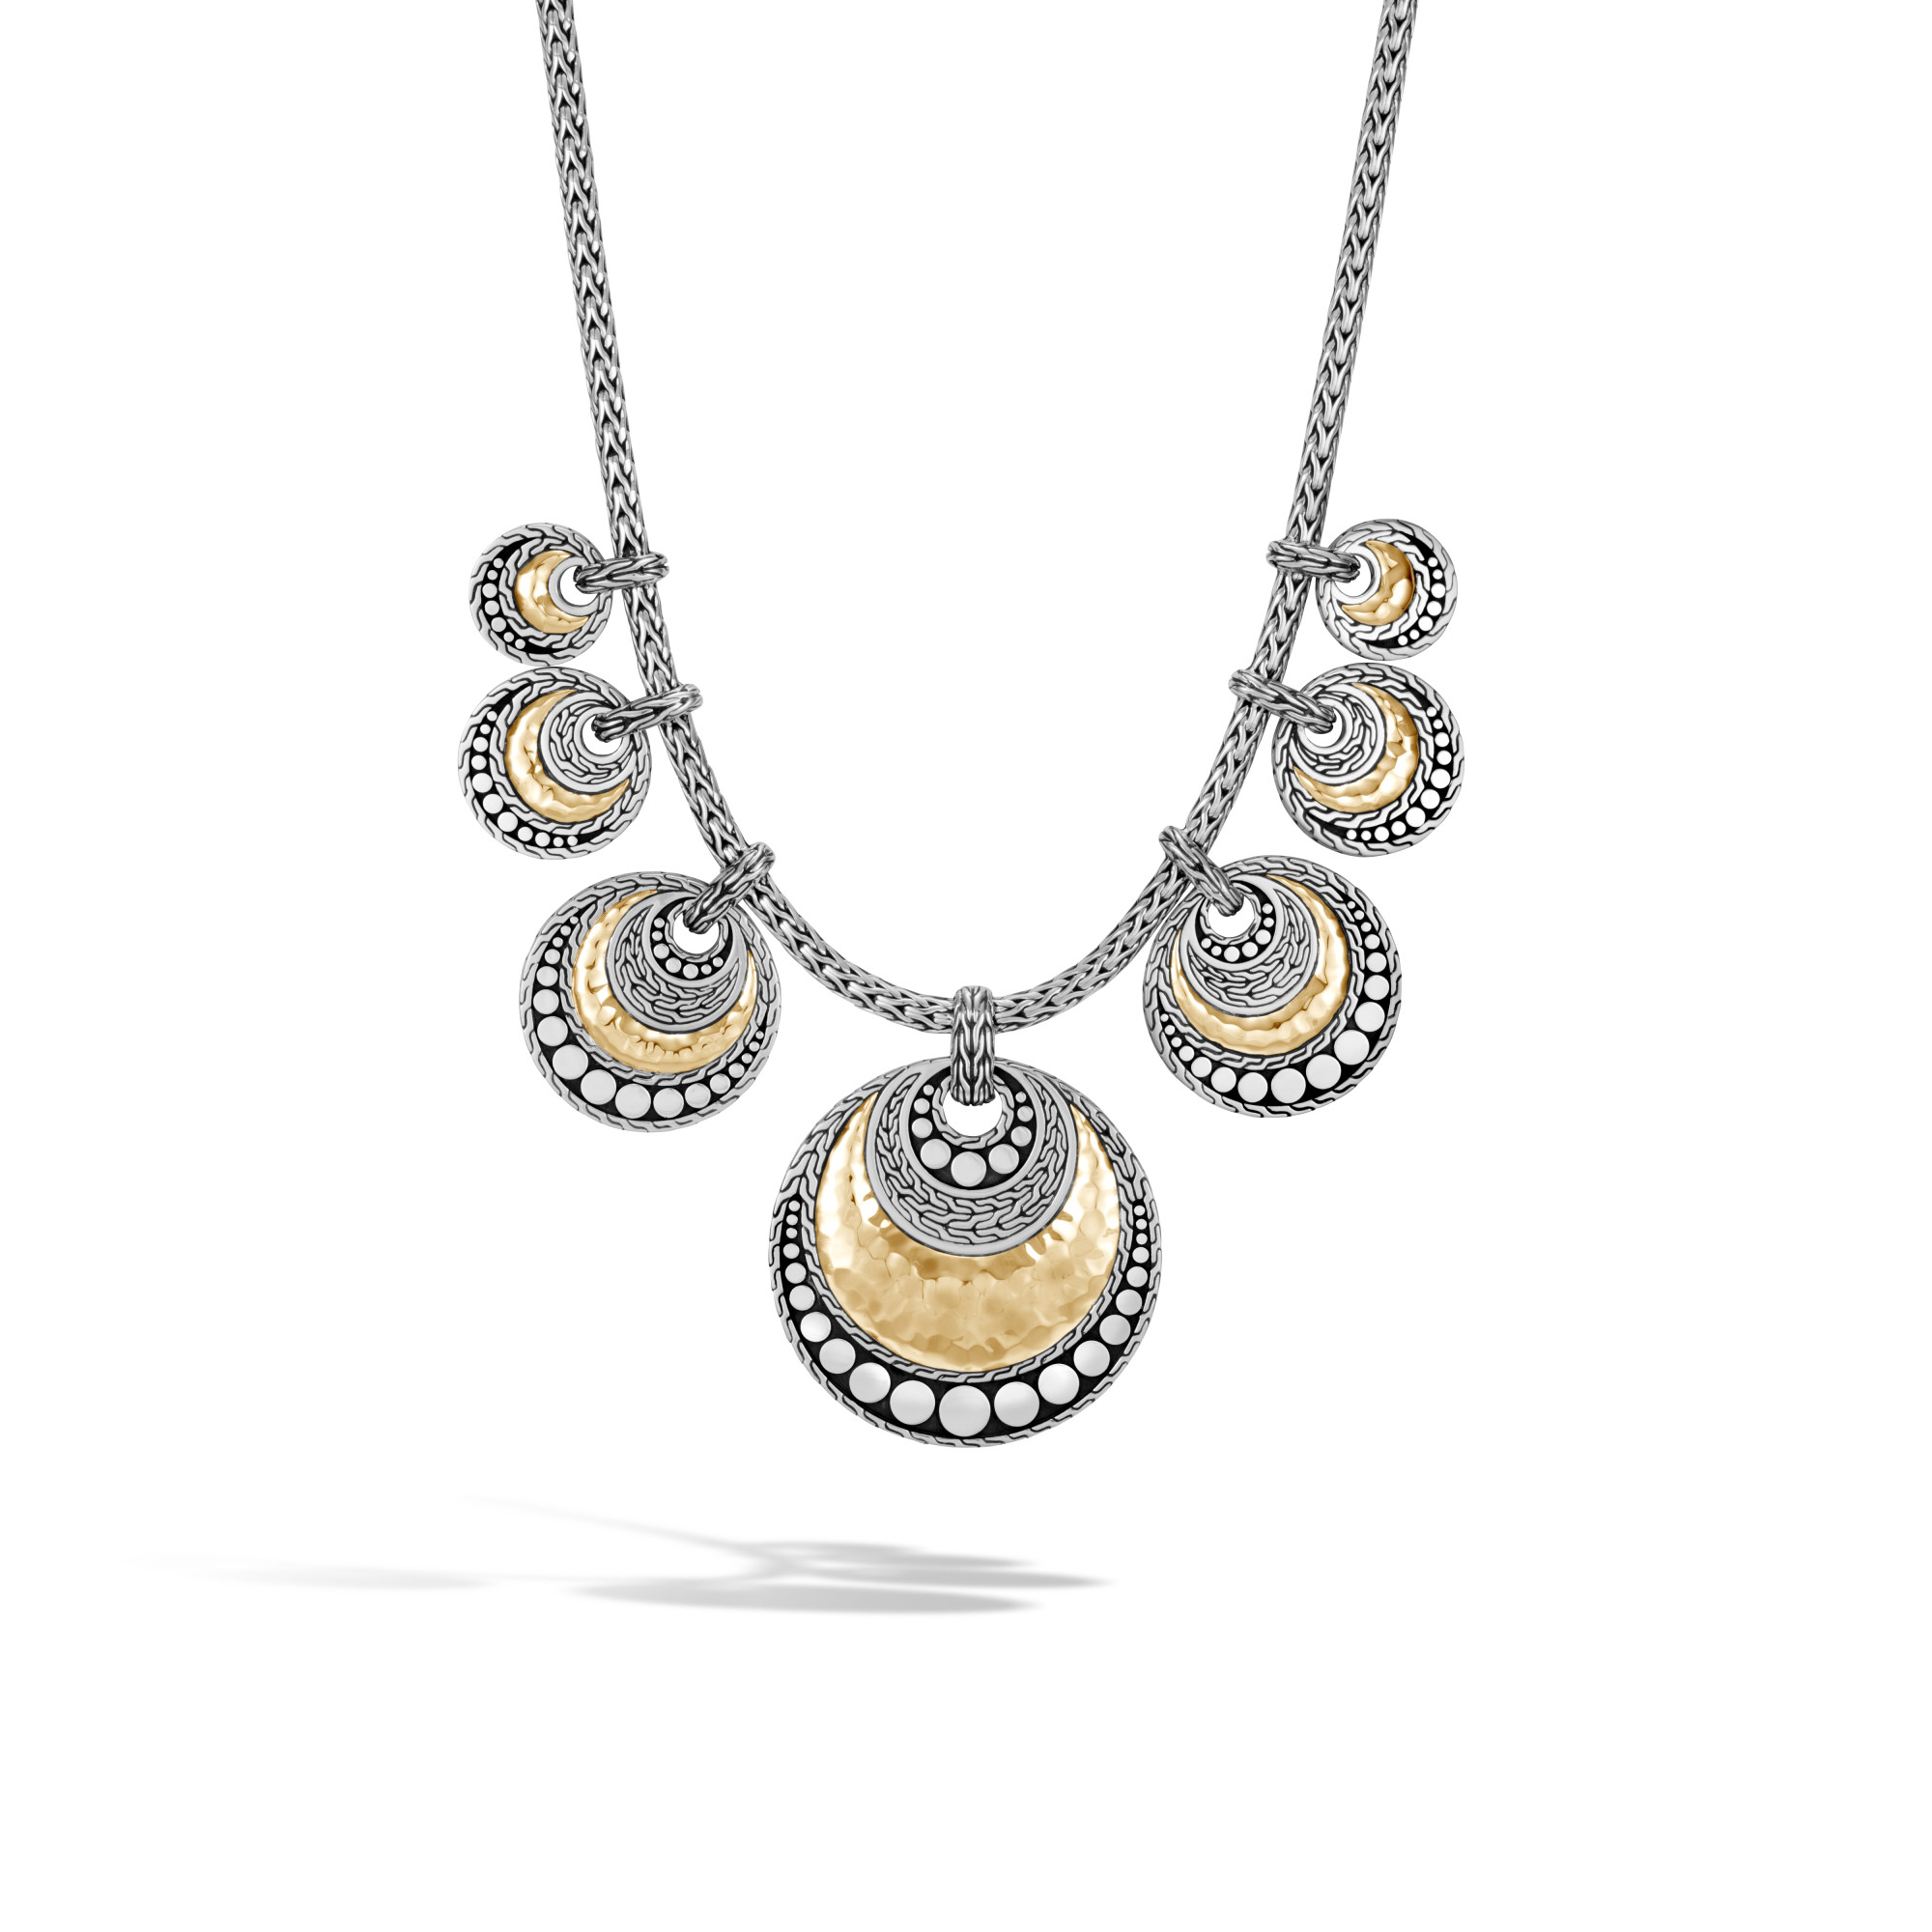 John Hardy  Sterling Silver     Silver Pendant with Stones NZ30083X16-18